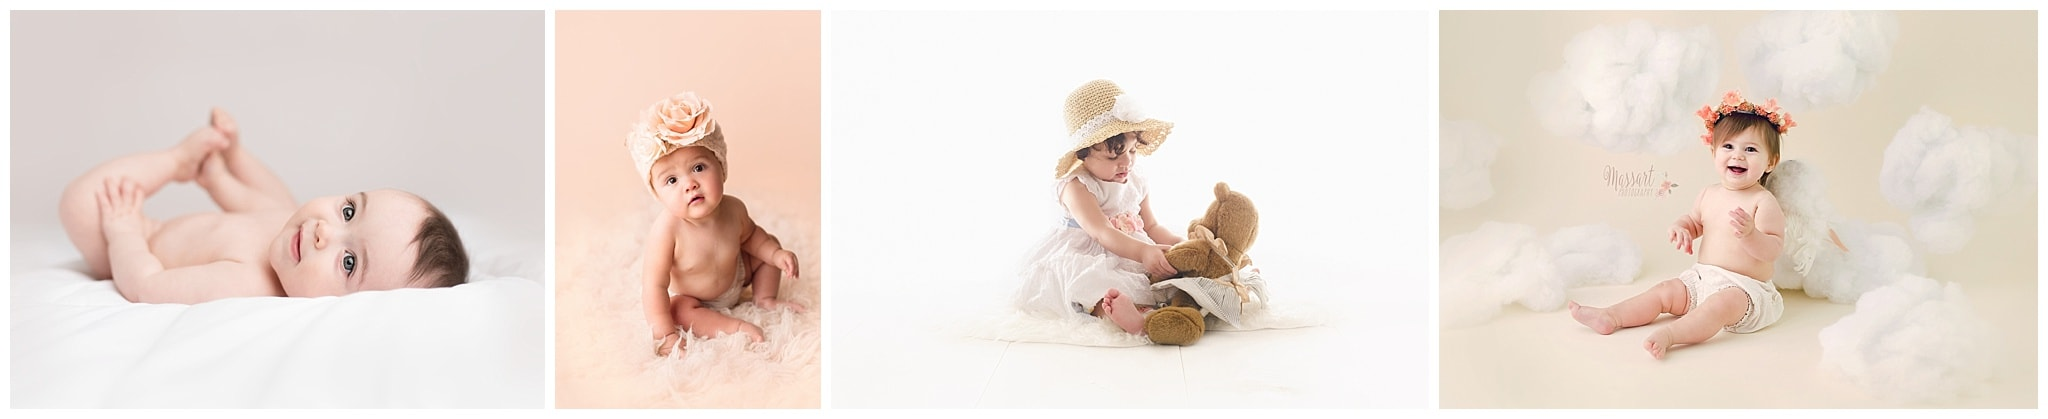 Studio Photography For Families Babies Newborns And